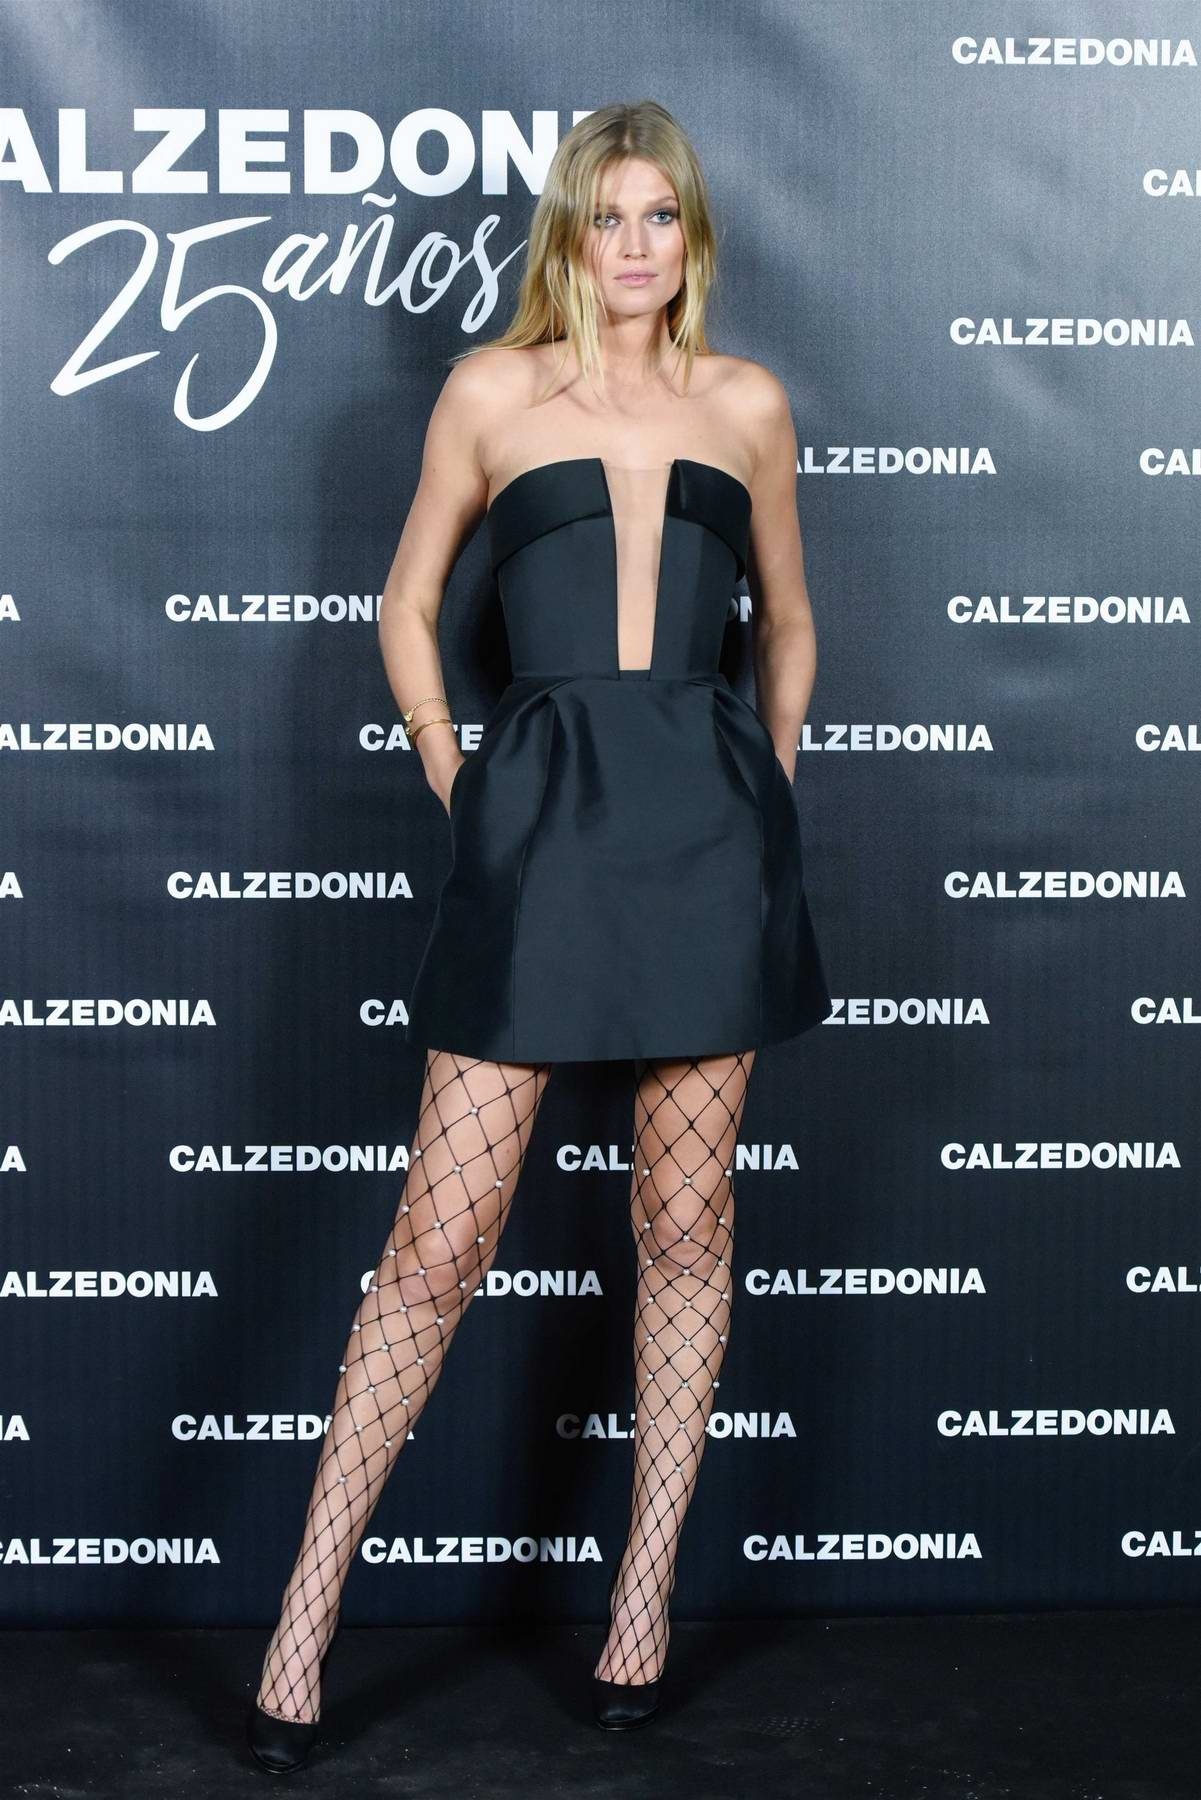 Toni Garrn attend the 25th Calzedonia anniversary party at the Botanic Garden in Madrid, Spain